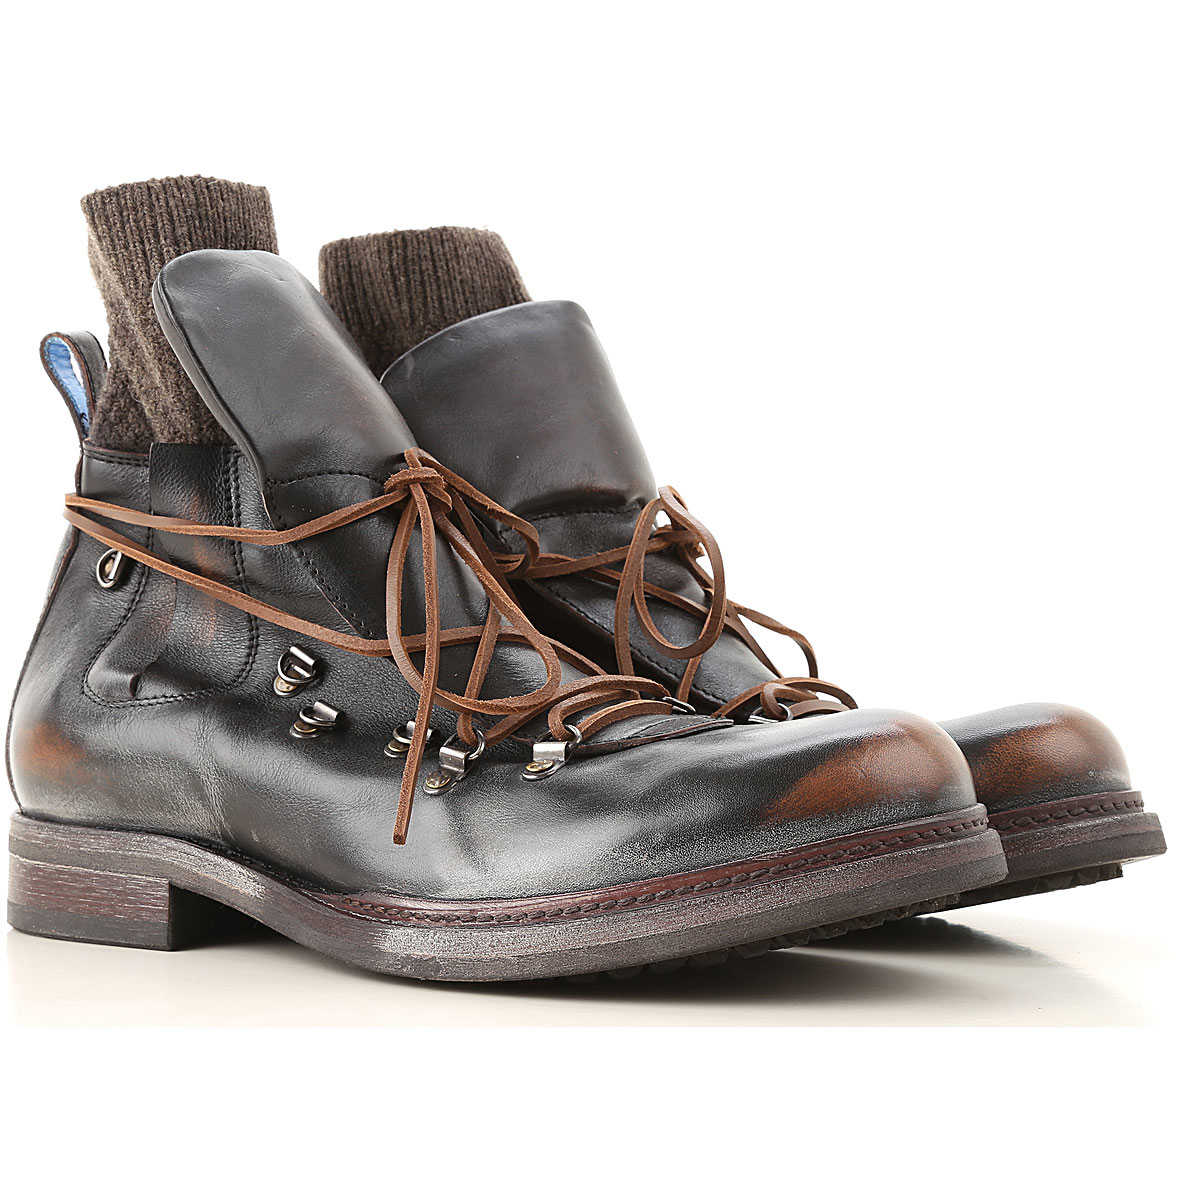 Moma Boots for Men Booties SE - GOOFASH